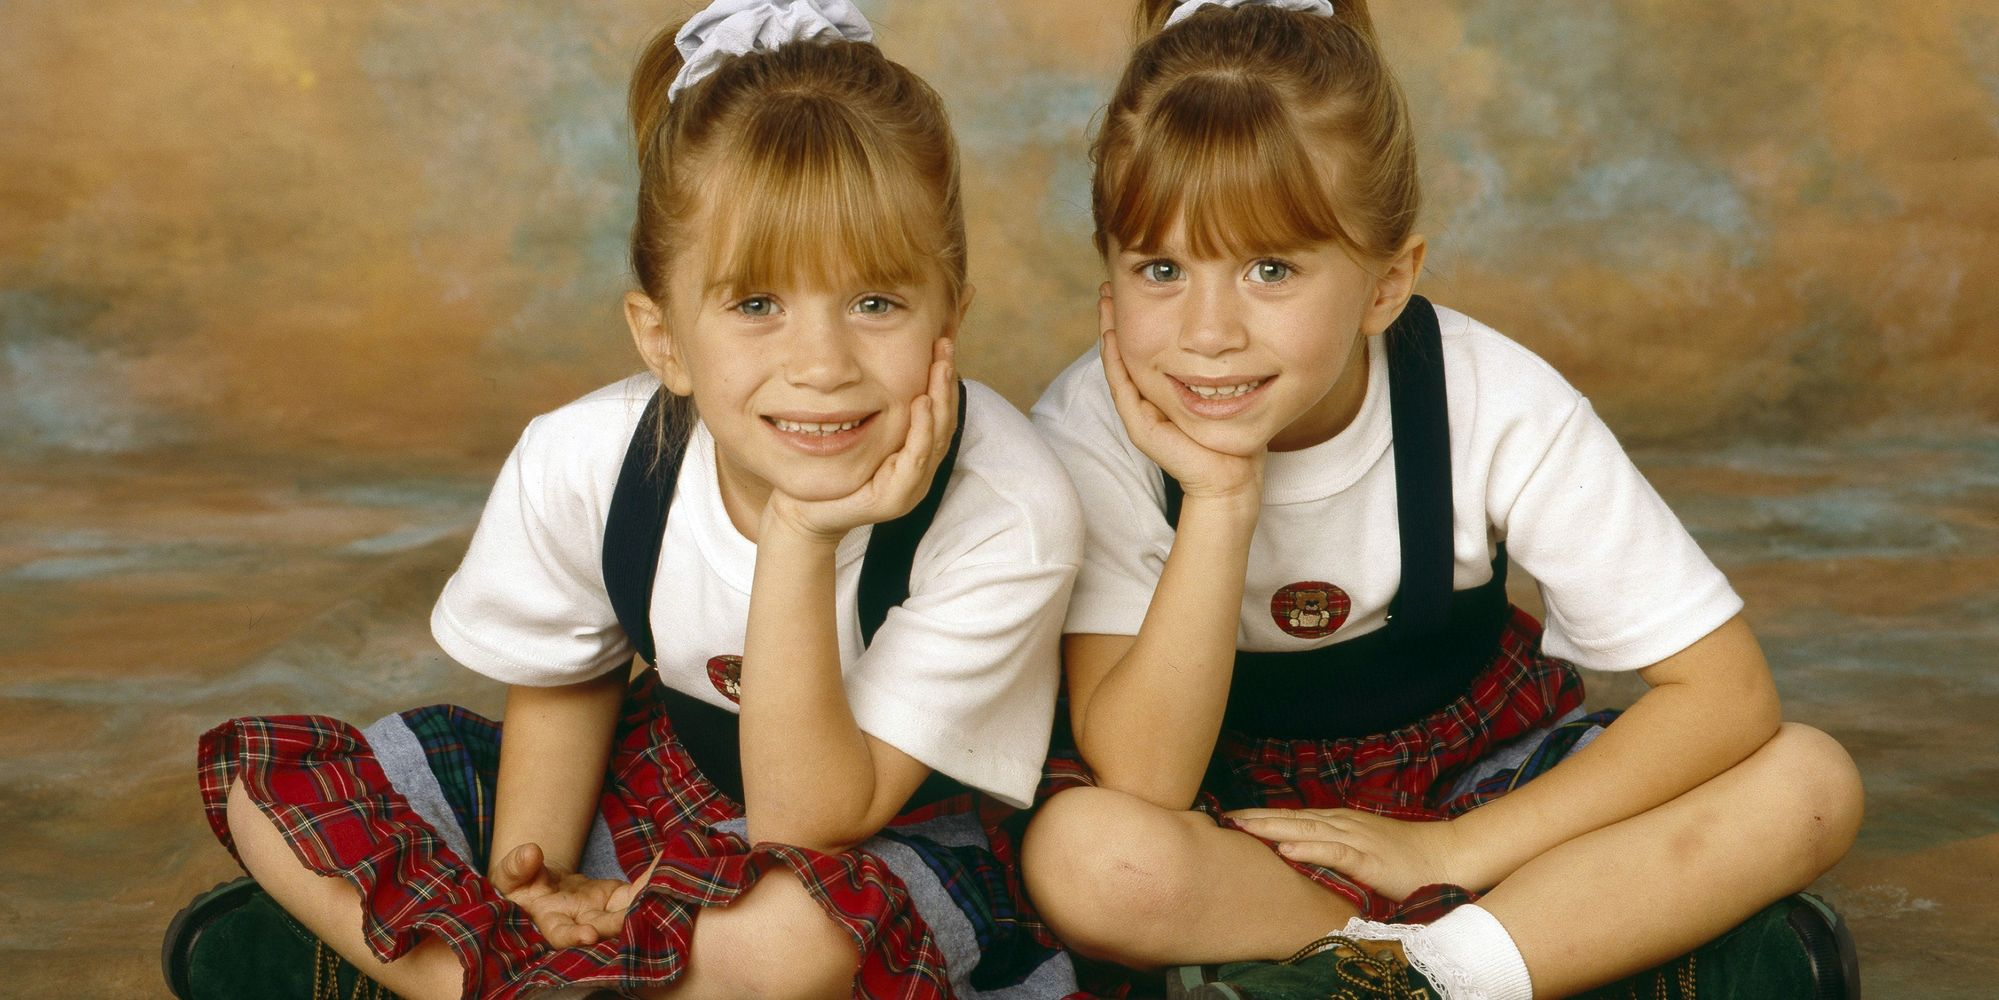 About That Time The Olsen Twins Were Almost Fired From ...